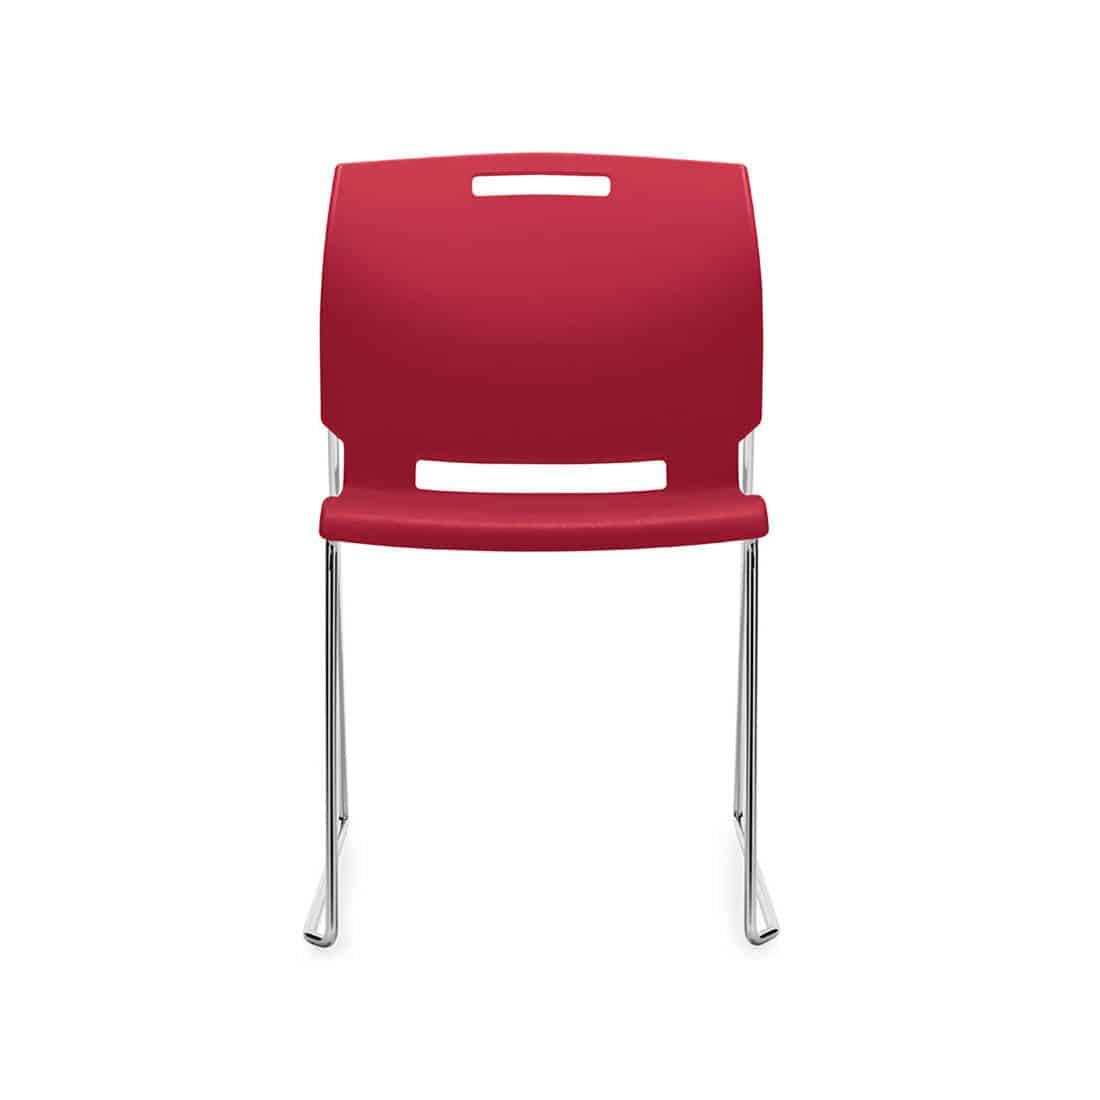 Office Cafeteria Furniture Break Room Amp Lunch Room Chairs